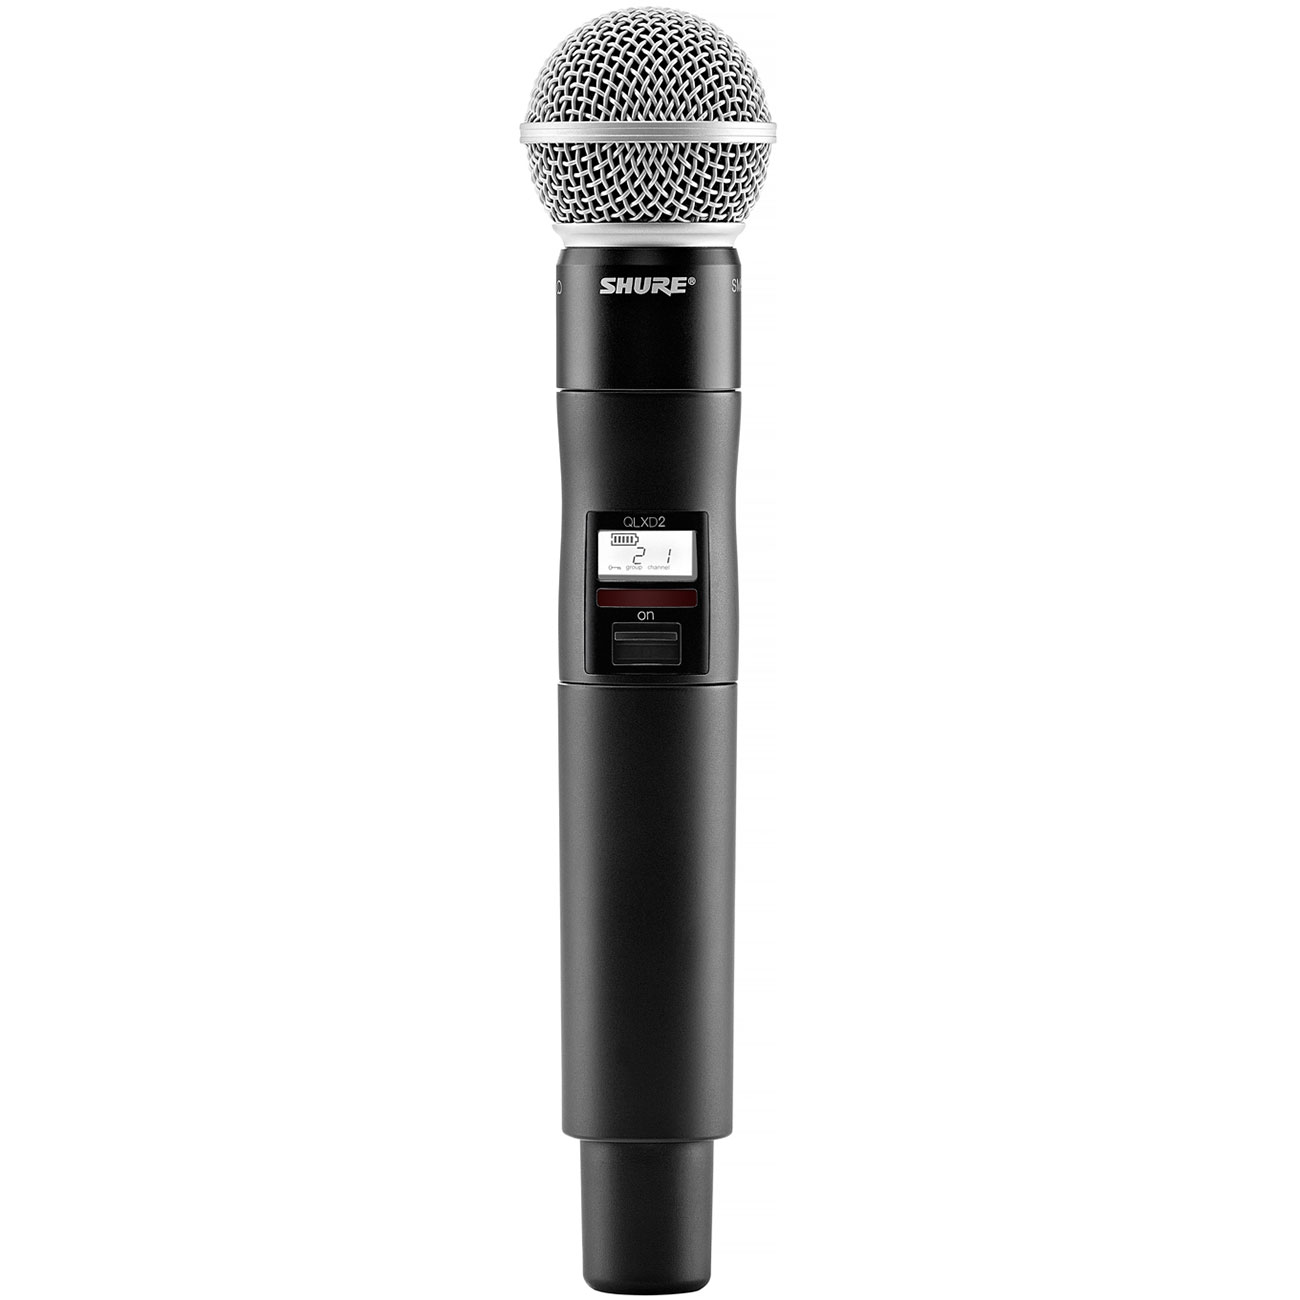 Shure QLX-D Handheld Transmitter with SM58 Microphone